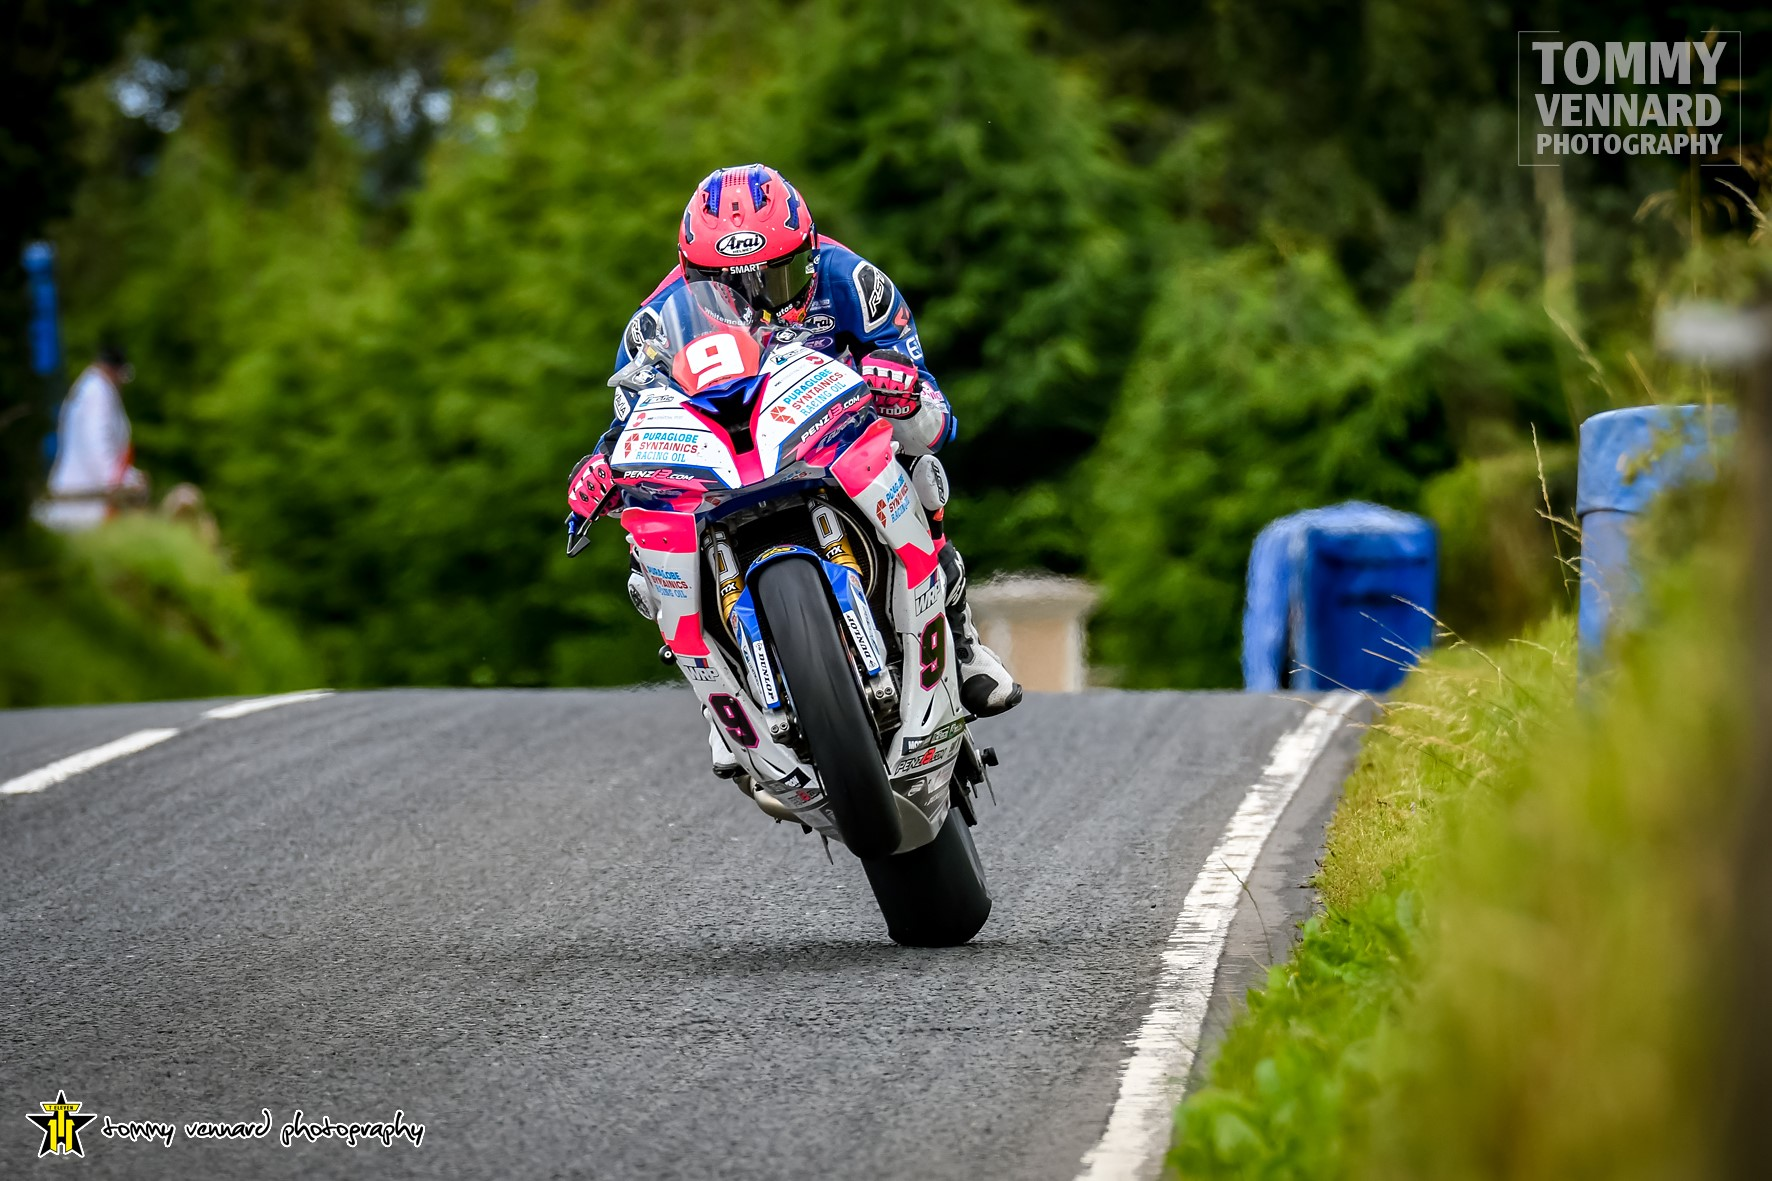 30 Rider Entry List Announced For IRRC Horice Superbike Encounters